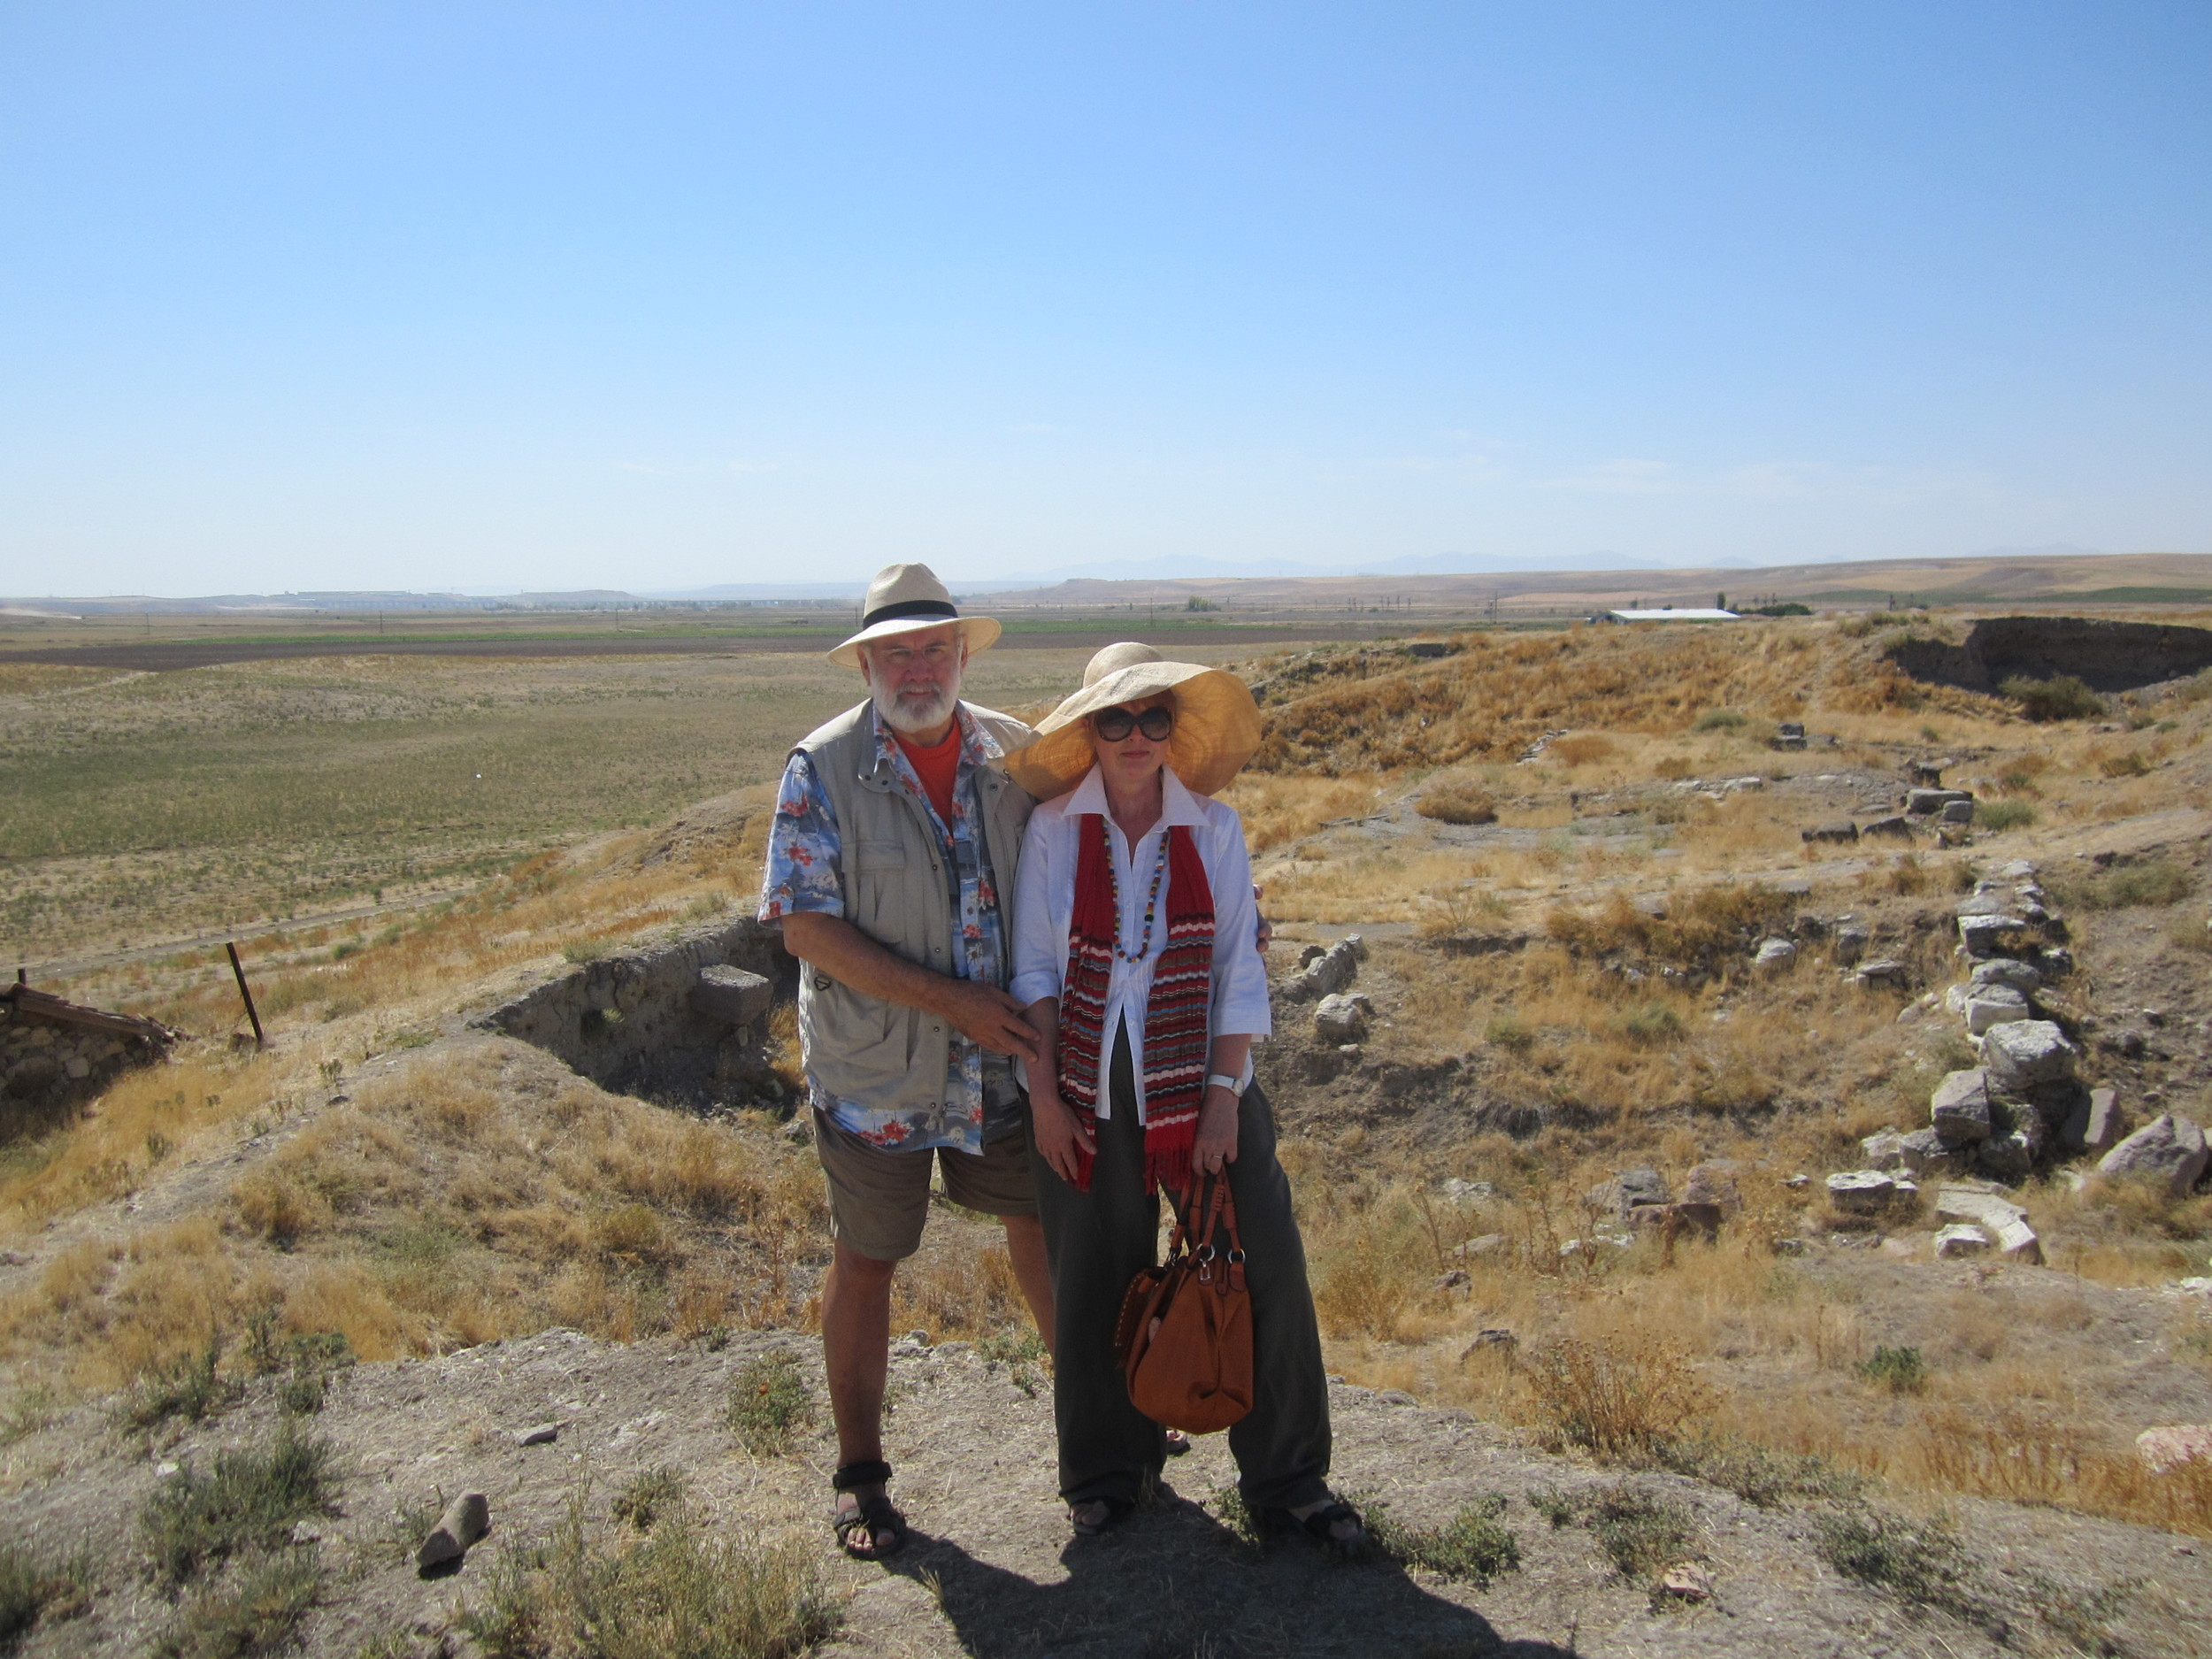 The Anatolian Plateau, the last stage for the great camel caravans of the Silk Road.